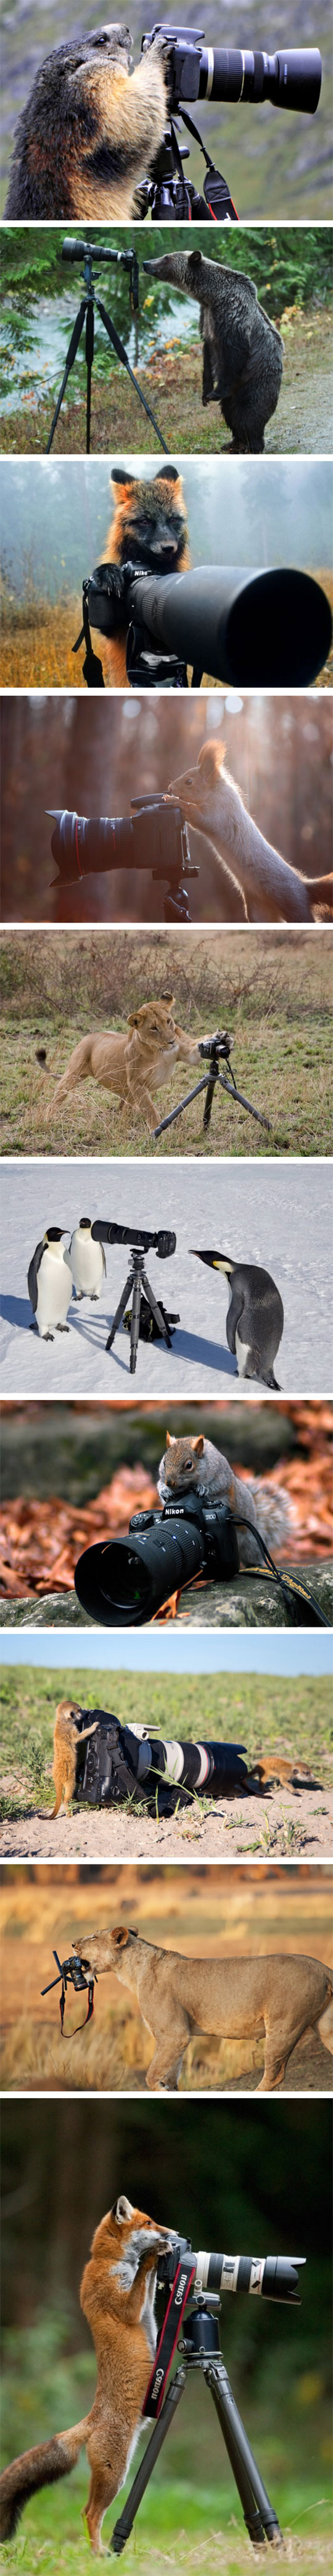 cool-animals-taking-pictures-photography